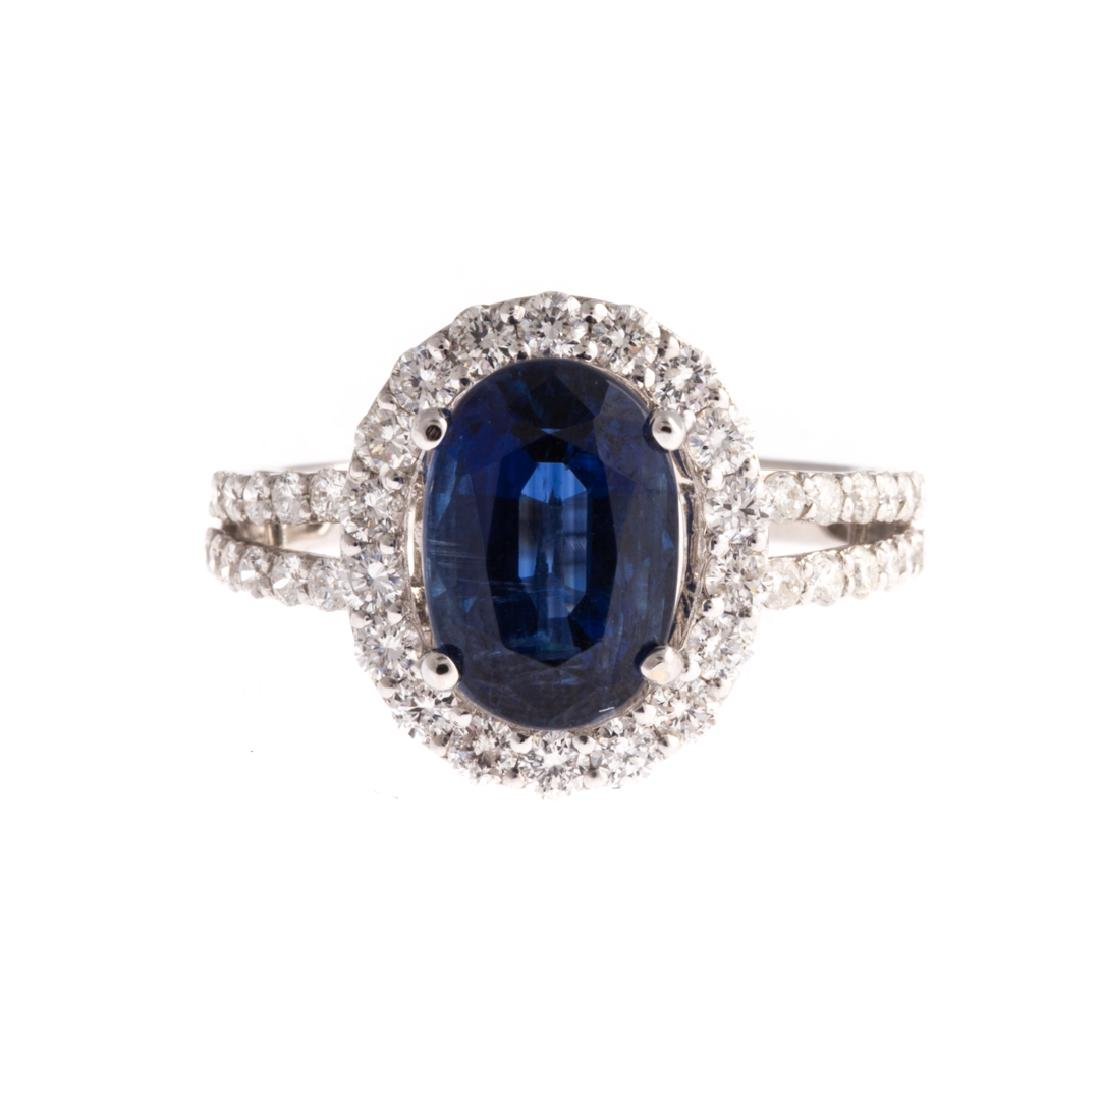 A Lady's Sapphire and Diamond Ring in 18K